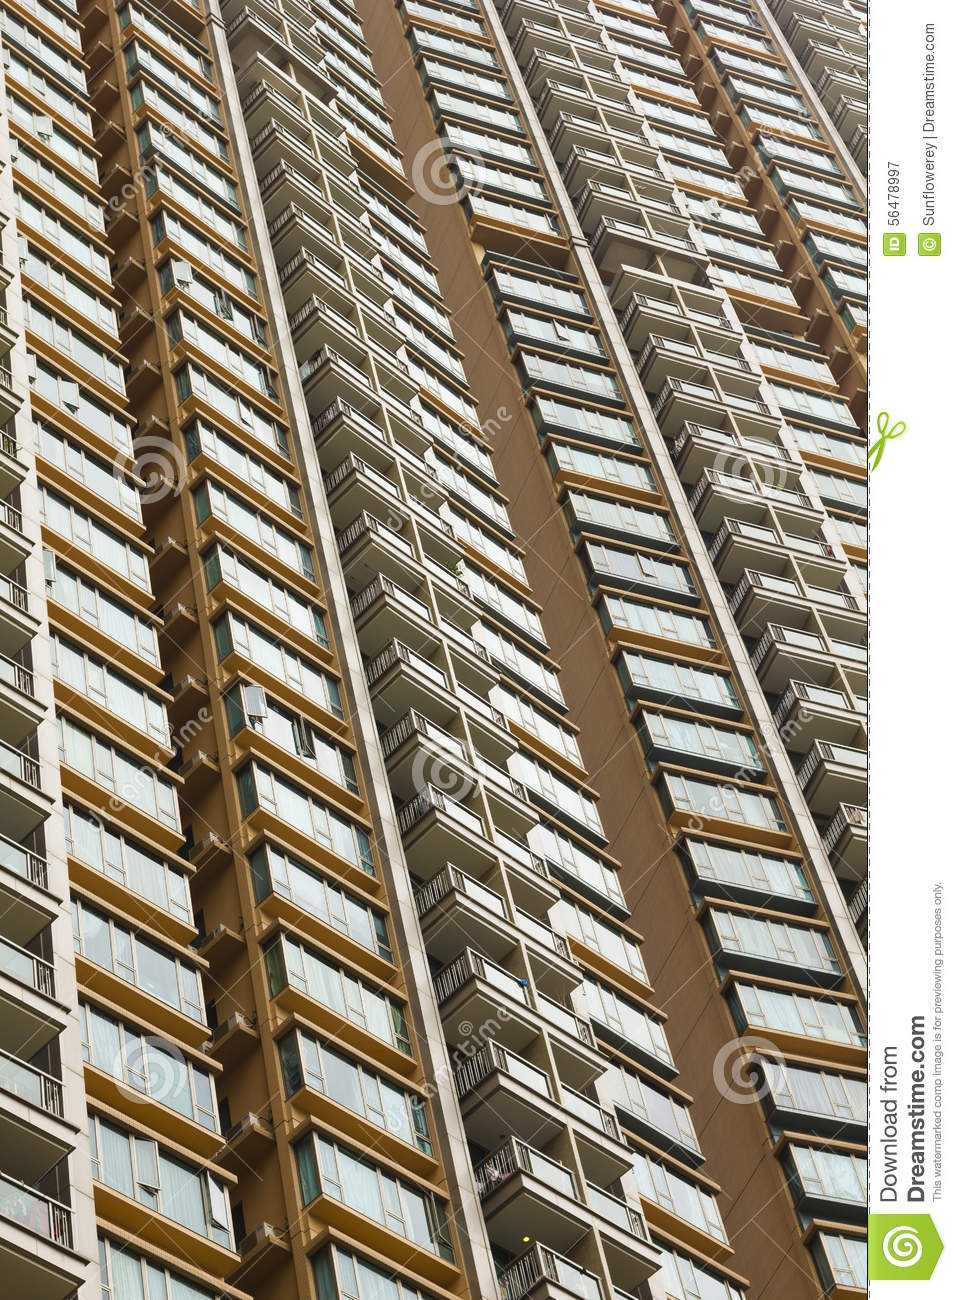 Appartements modernes de ville en Hong Kong